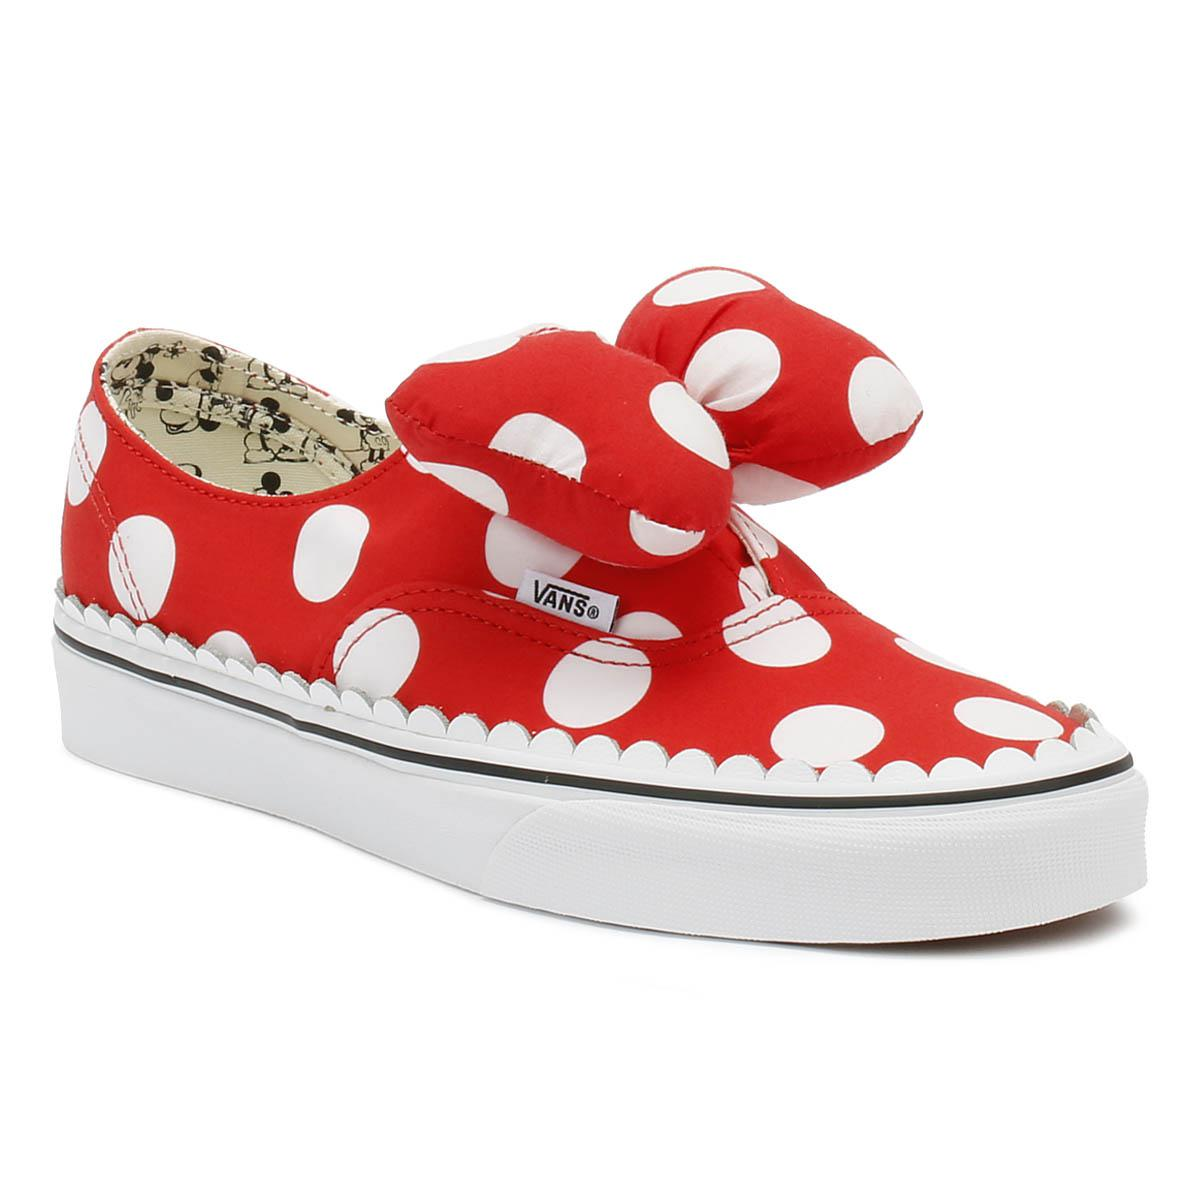 dbdc525668c19a Vans X Disney Authentic Gore Red Spot Trainers in Red - Save 62% - Lyst